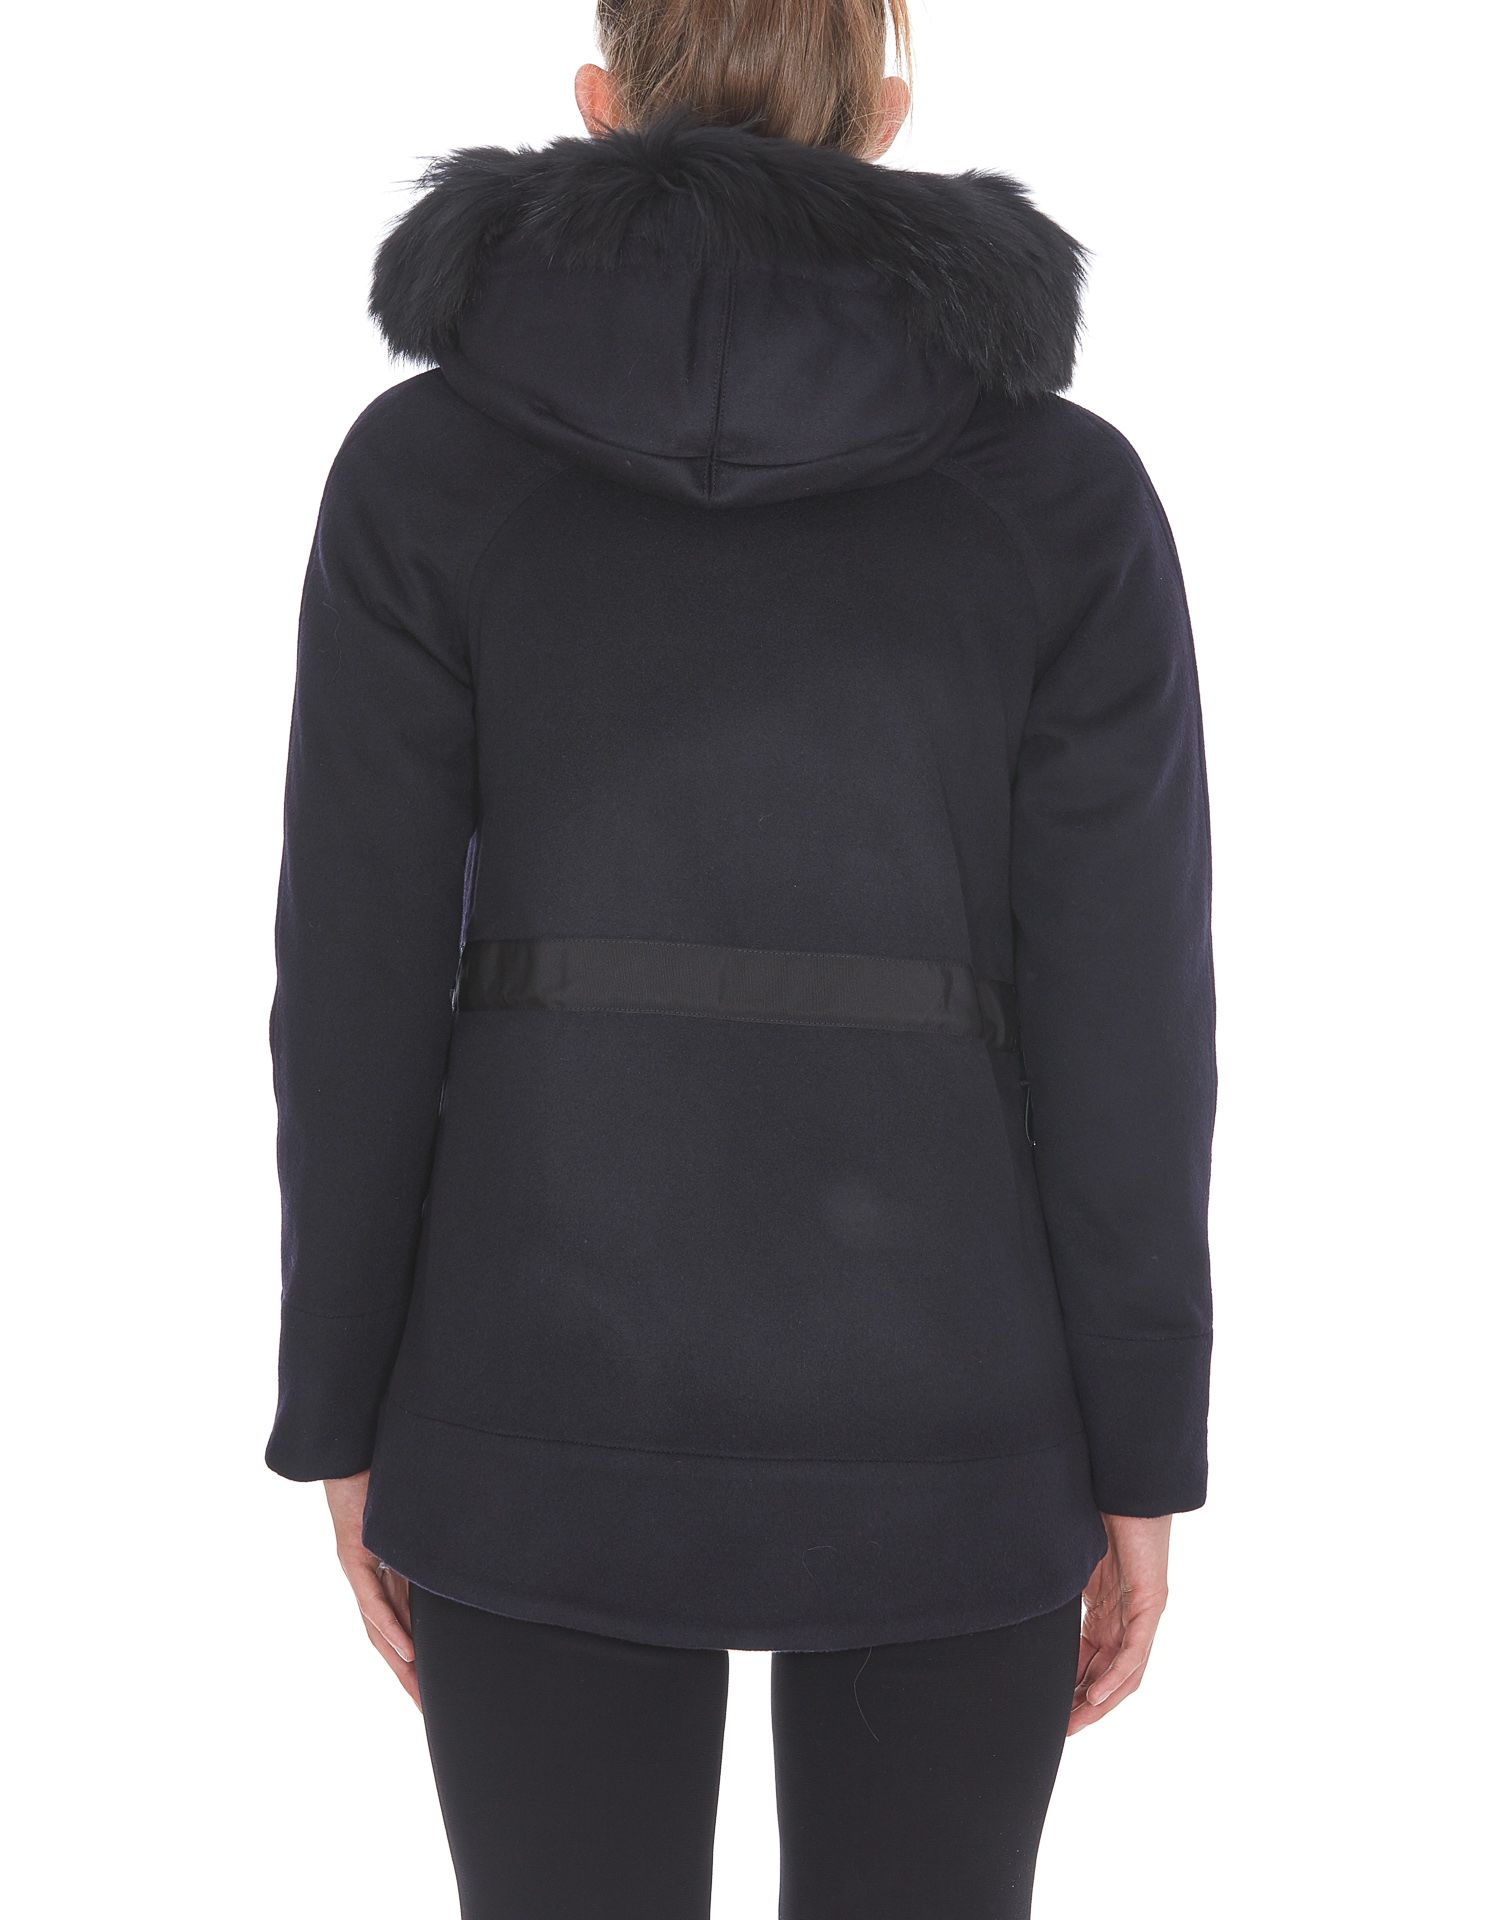 Find great deals on eBay for womens fleece jacket heavy. Shop with confidence.